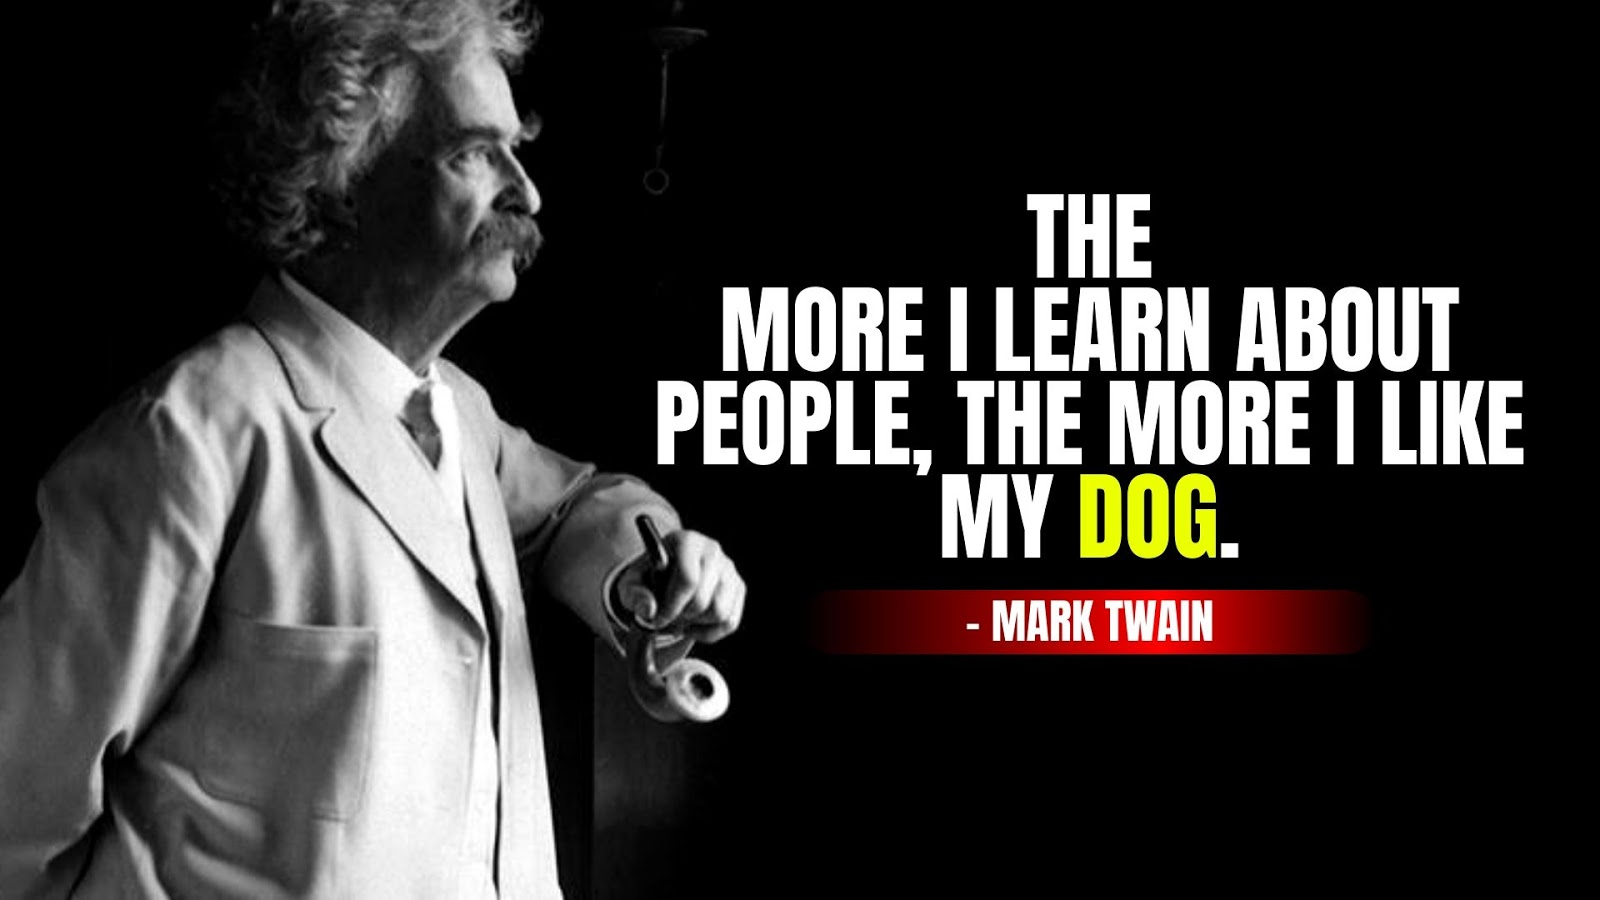 Mark Twain Quotes About Dog & Life, Mark Twain Quotes on Life